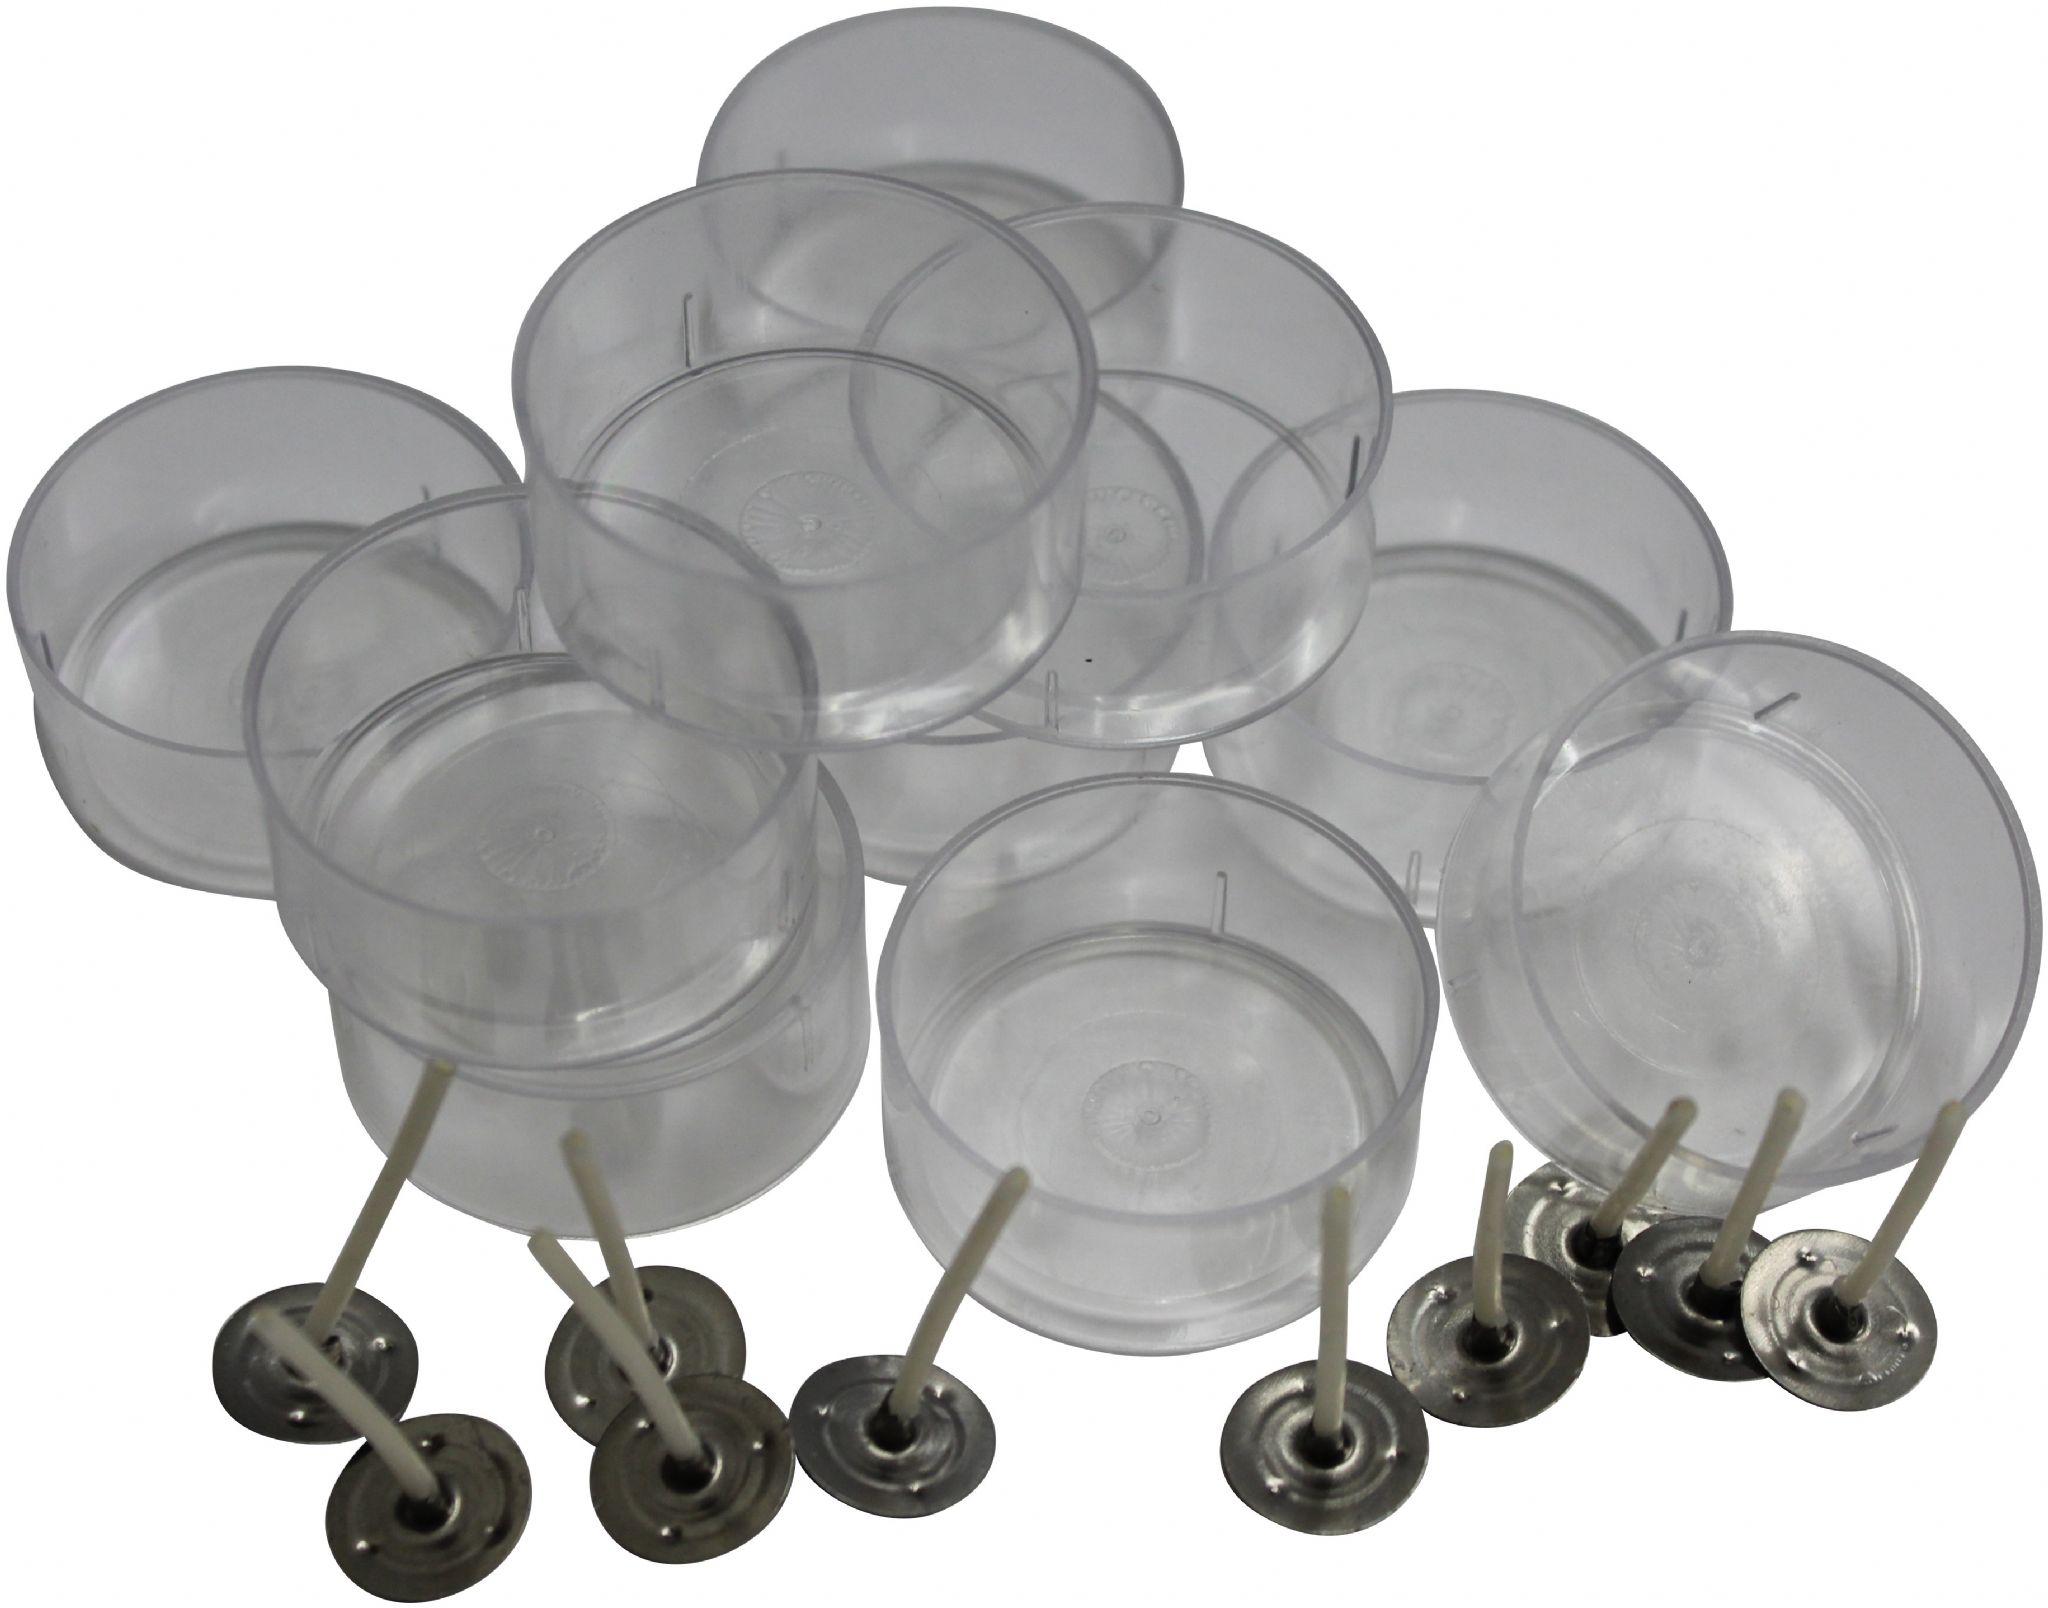 Tealight Cup Mould Clear Polycarbonate 4 Hour Cup With